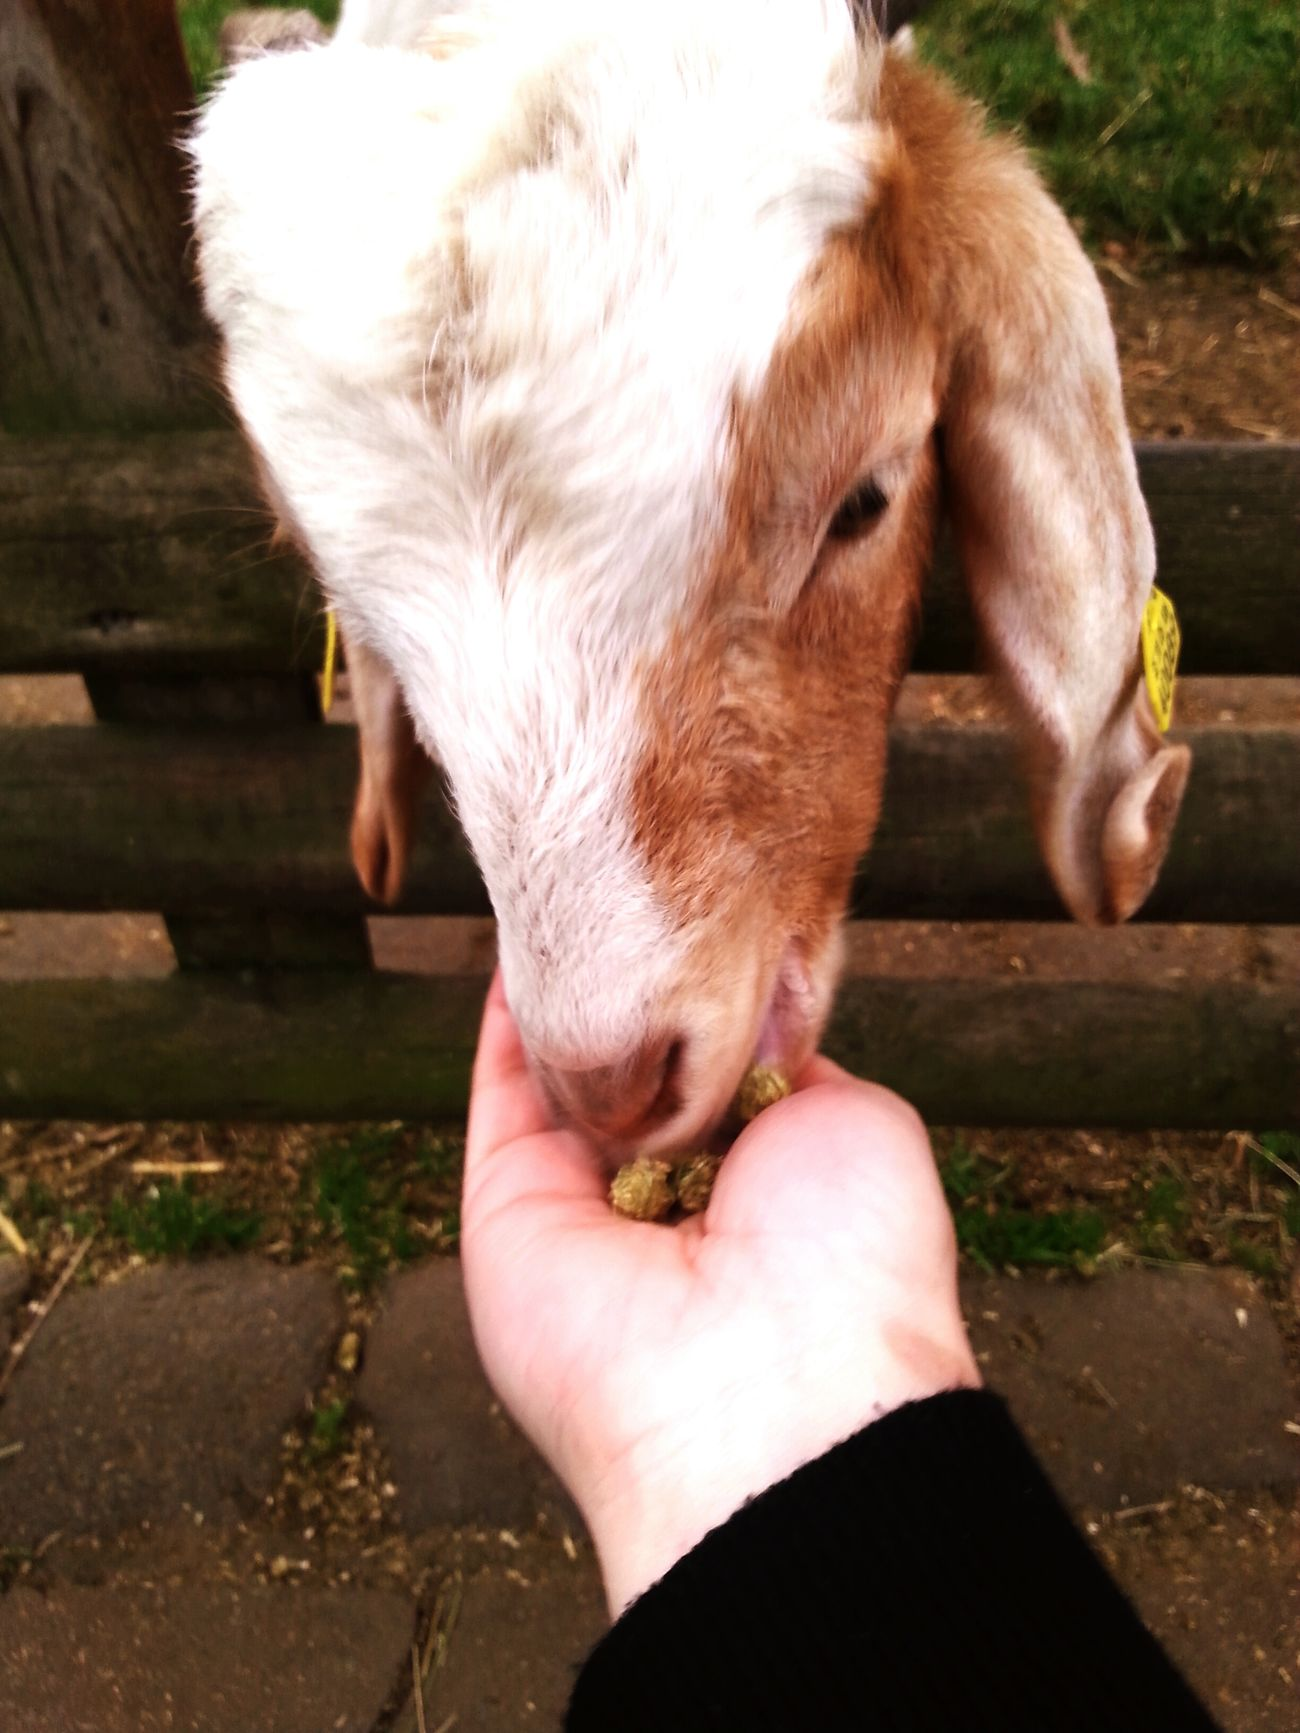 Feeding goats and sheep 🐑🐐 Walking Around Autumn Animals Animal_collection Enjoying Life Taking Photos Cheese!